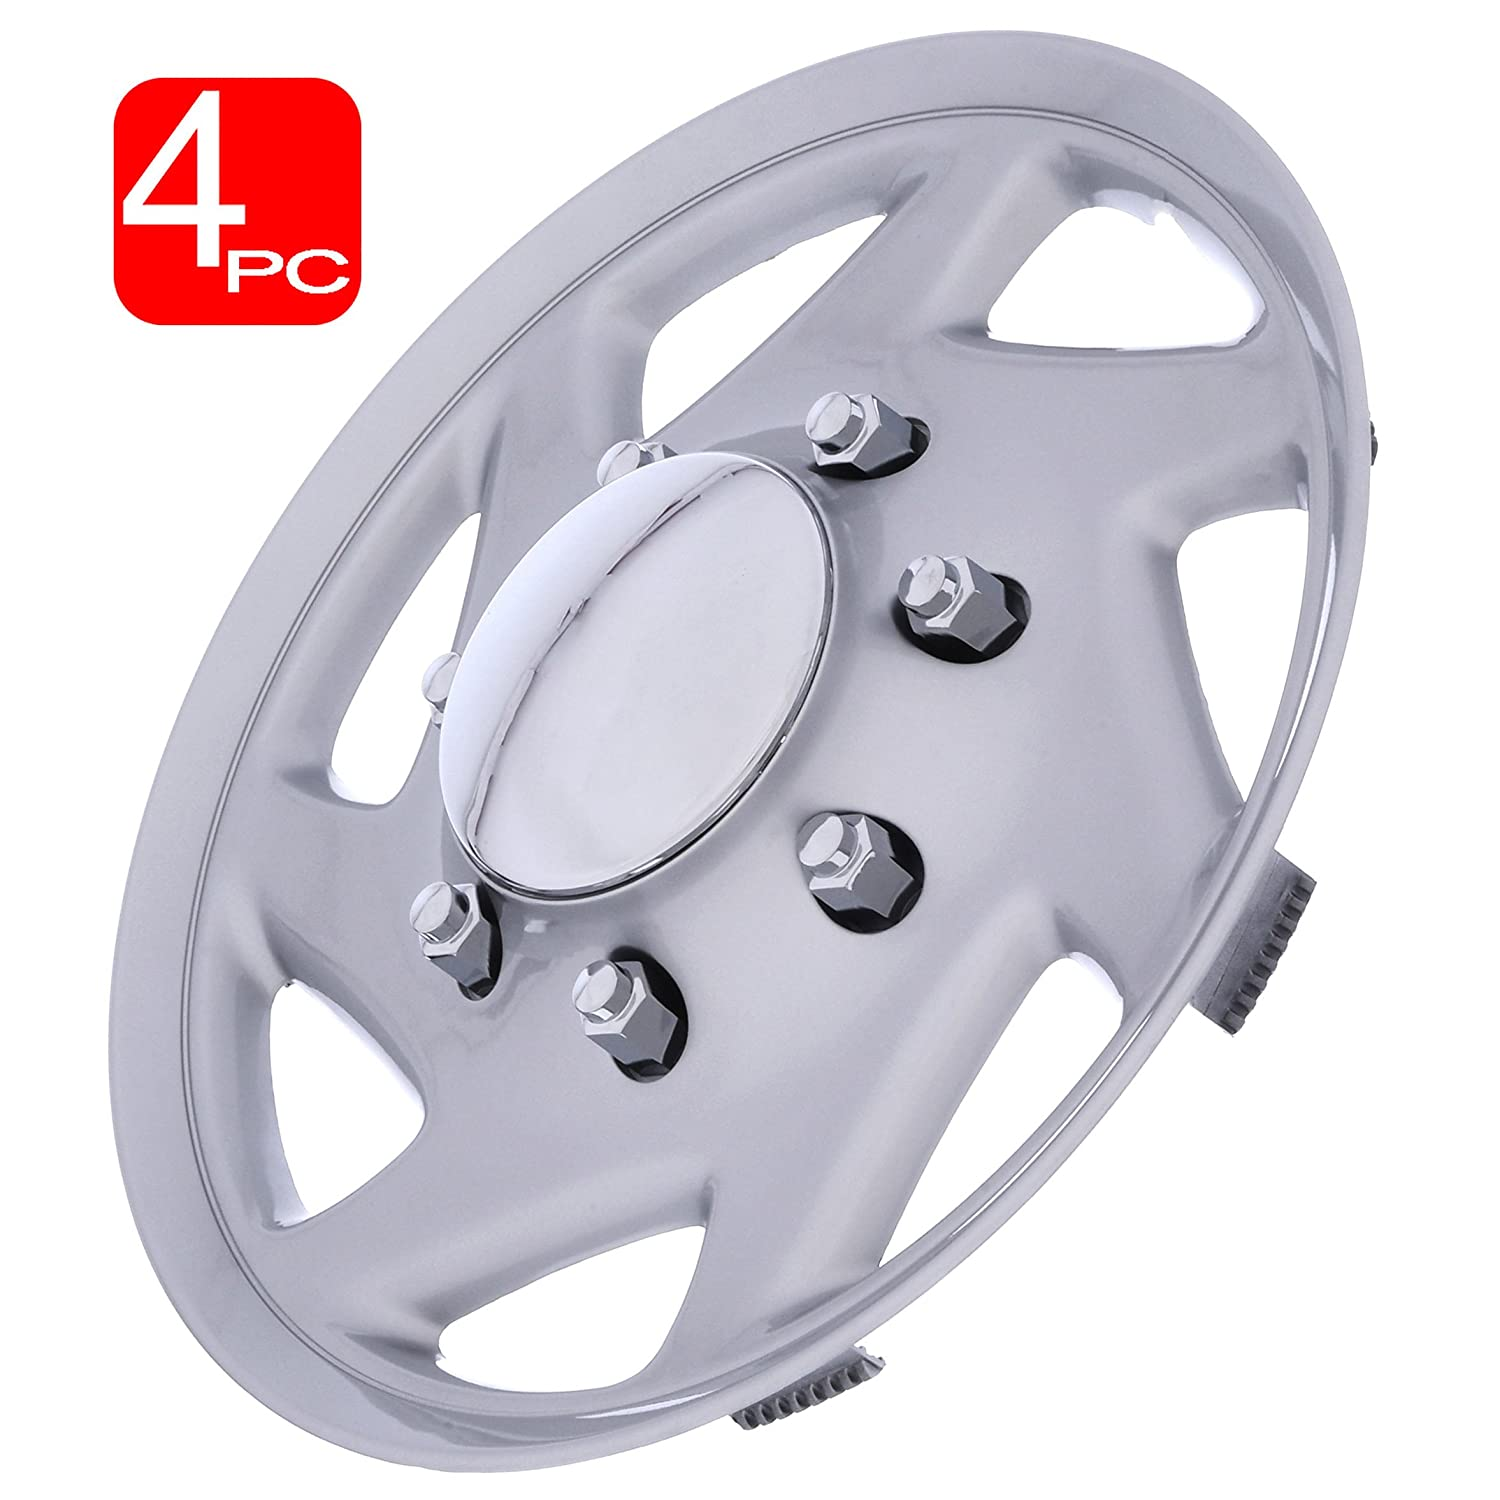 Set of 4 Aftermarket 16 Inch fits FORD TRUCK//ECONOLINE VAN -Replica Hub Caps Cover Trend Silver With Chrome Center and SILVER Trim Wheel Covers